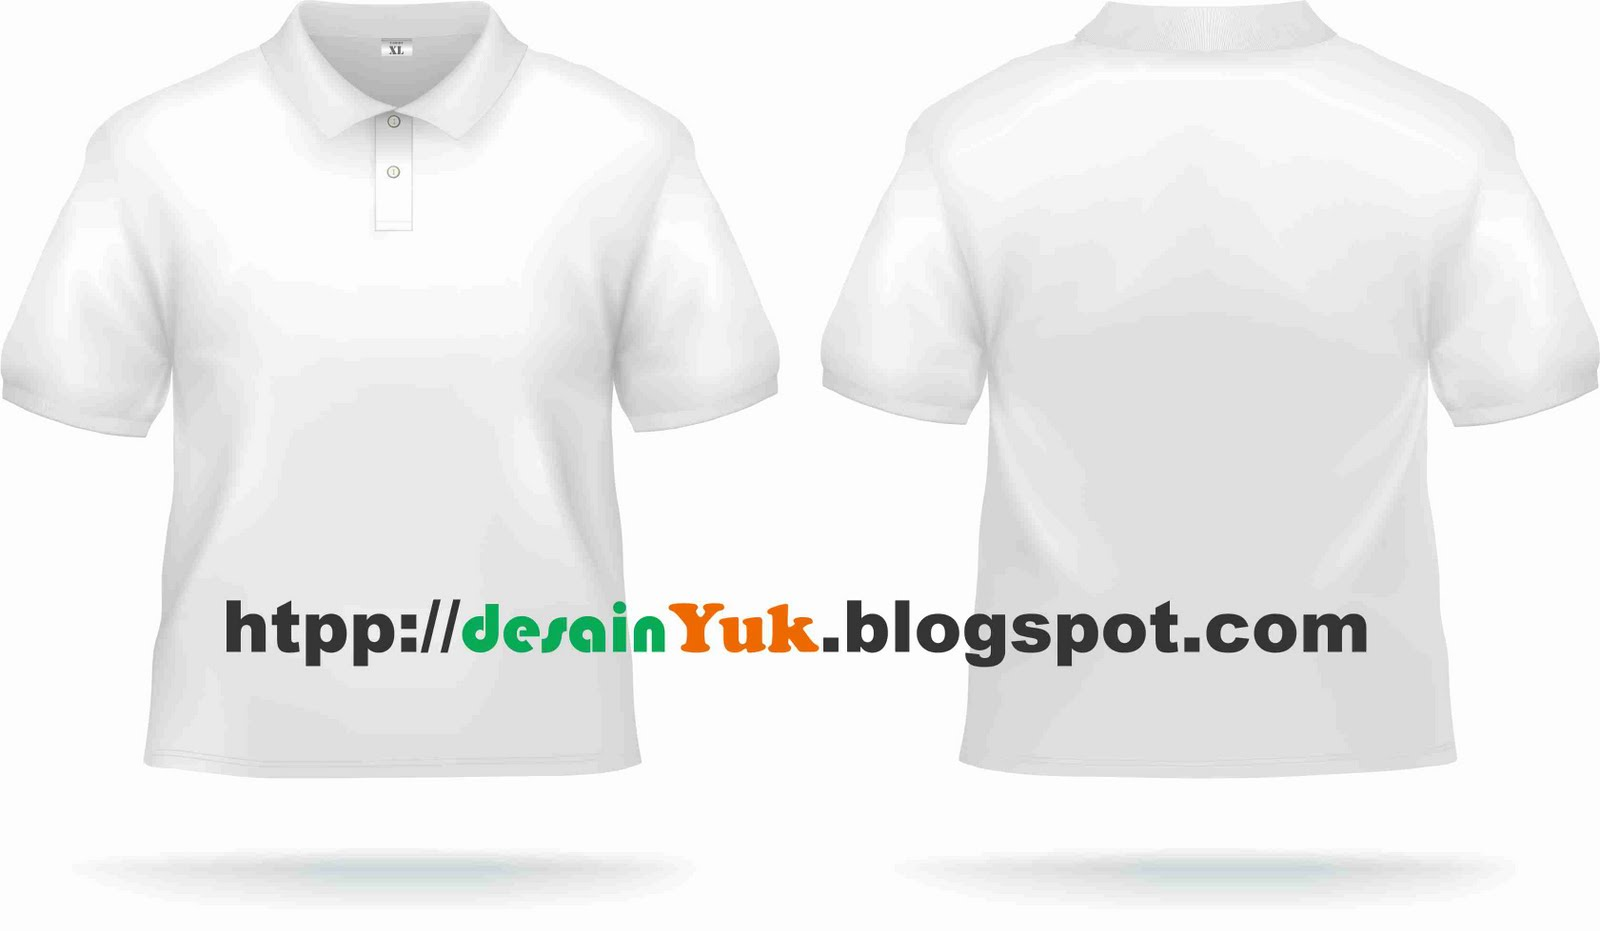 Download Gambar Sketsa Di Kaos Putih